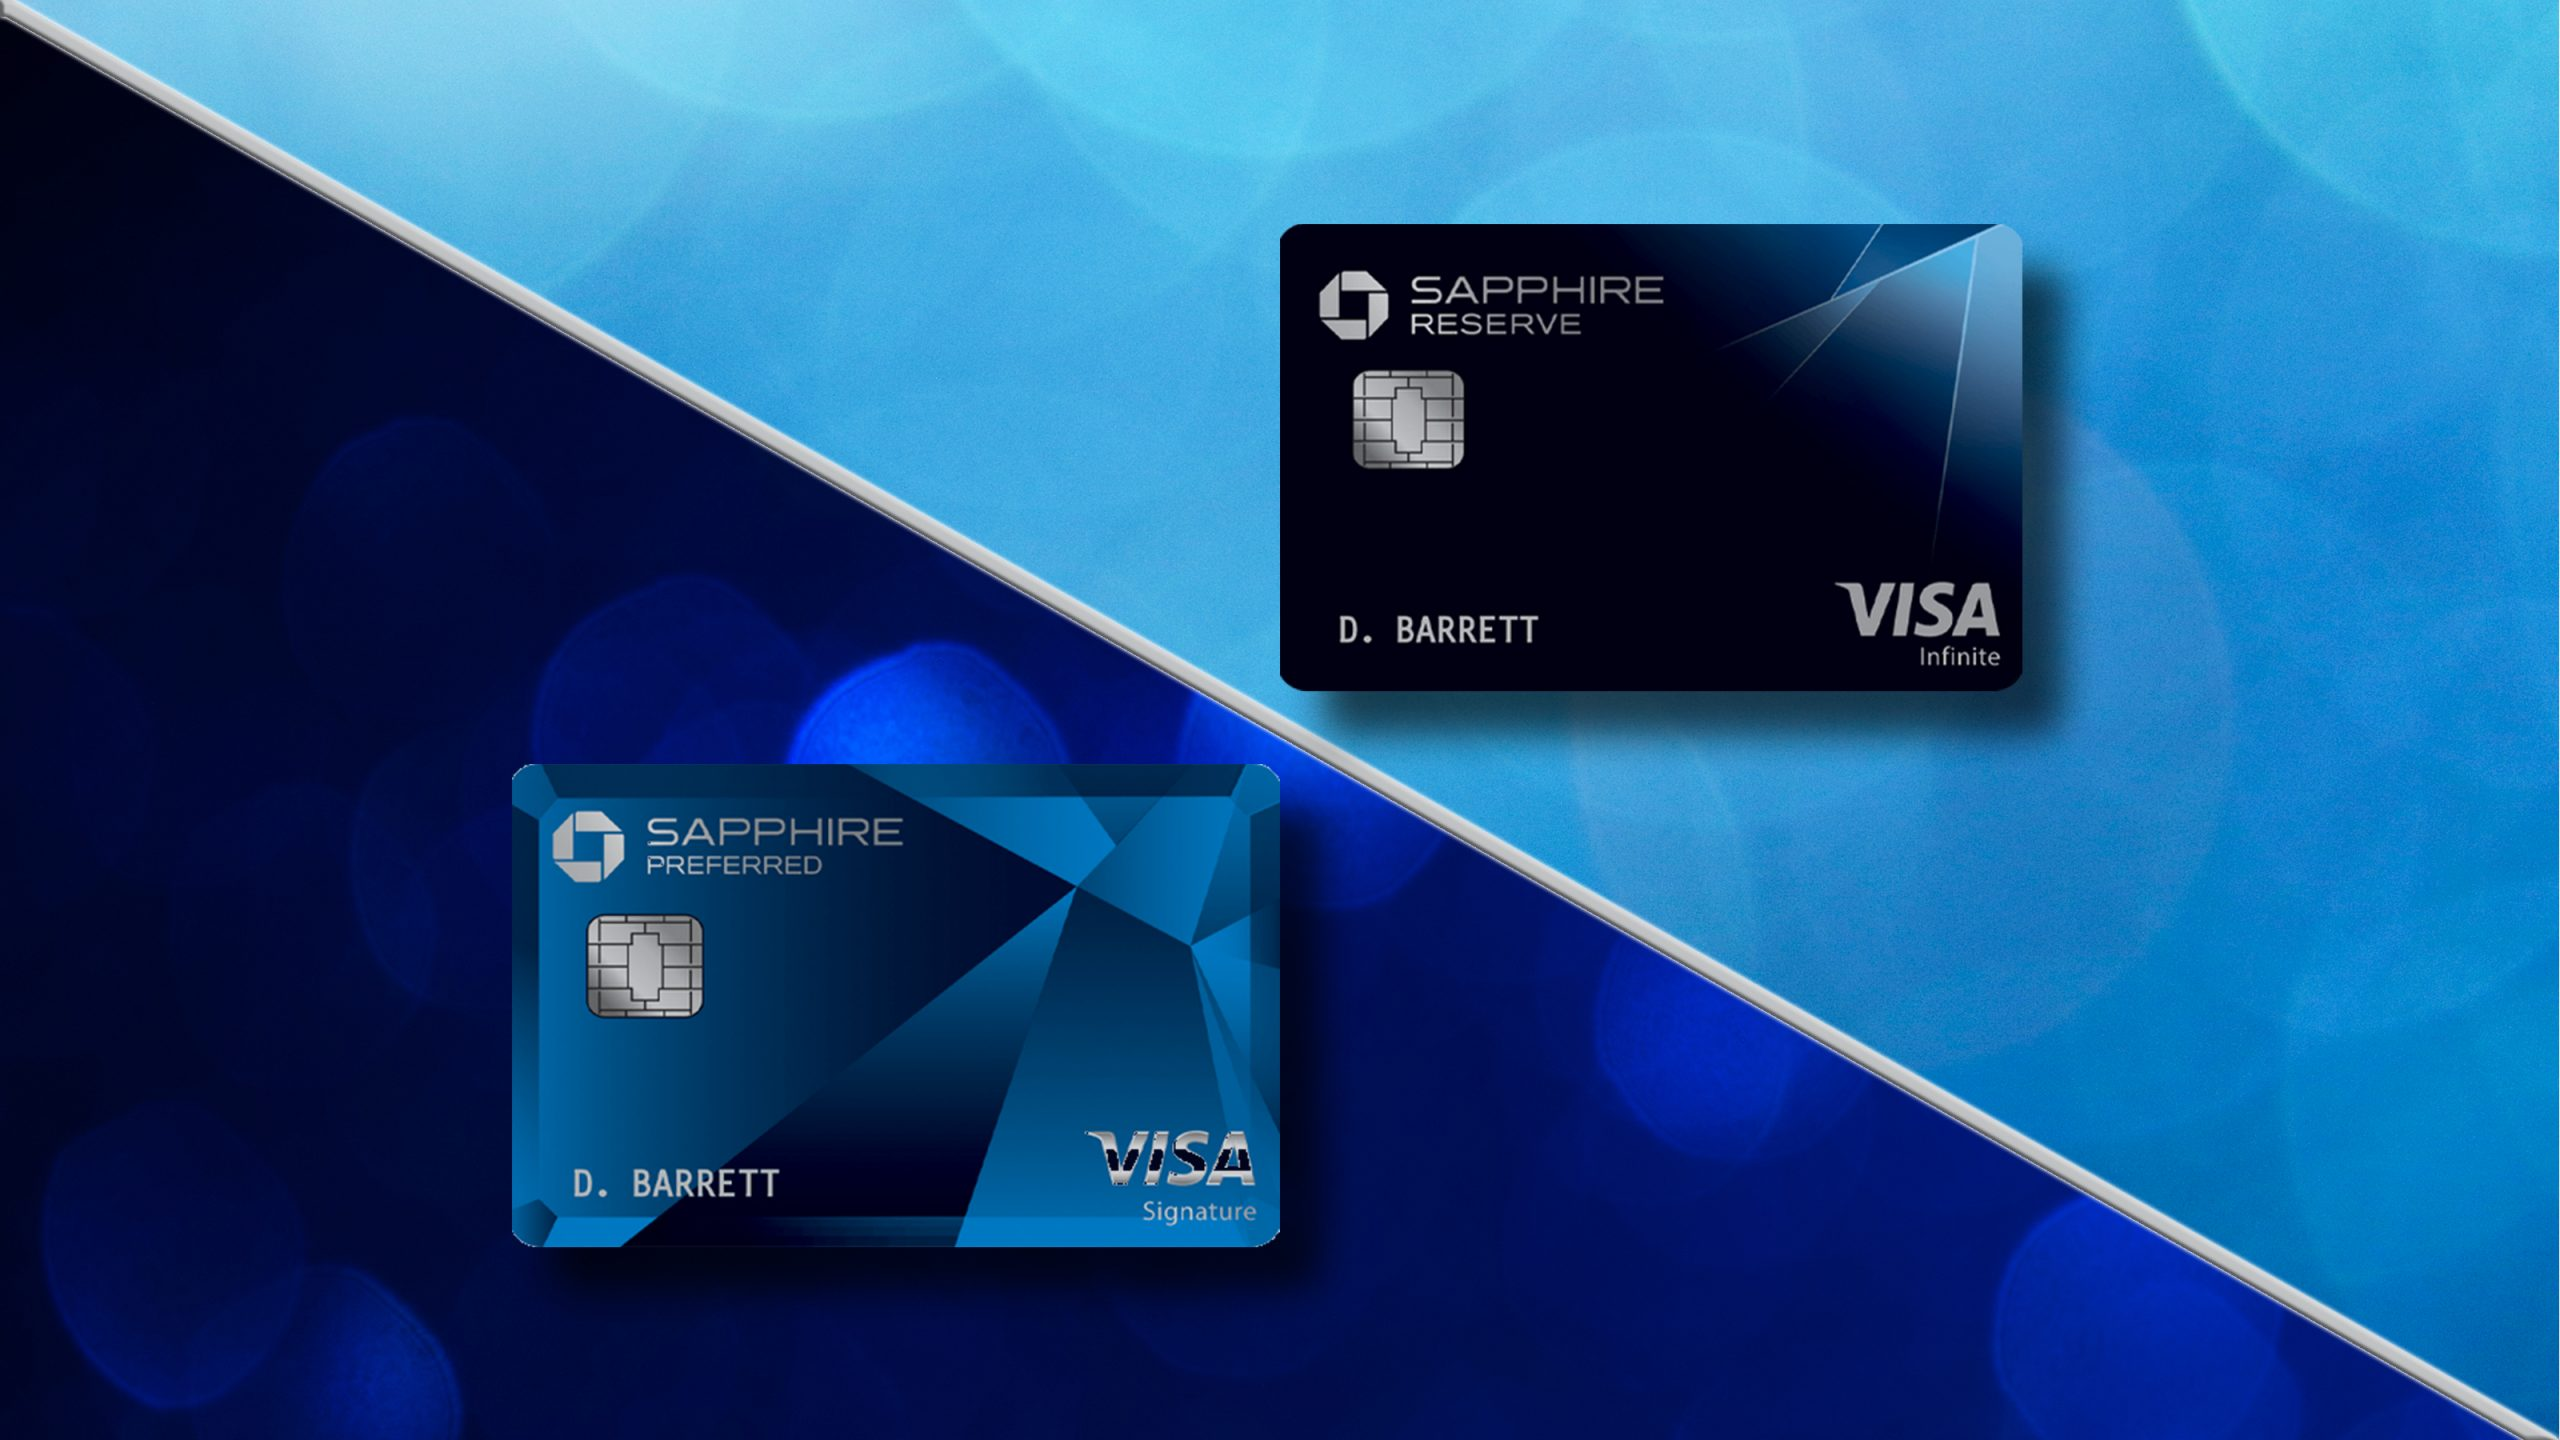 chase card benefits